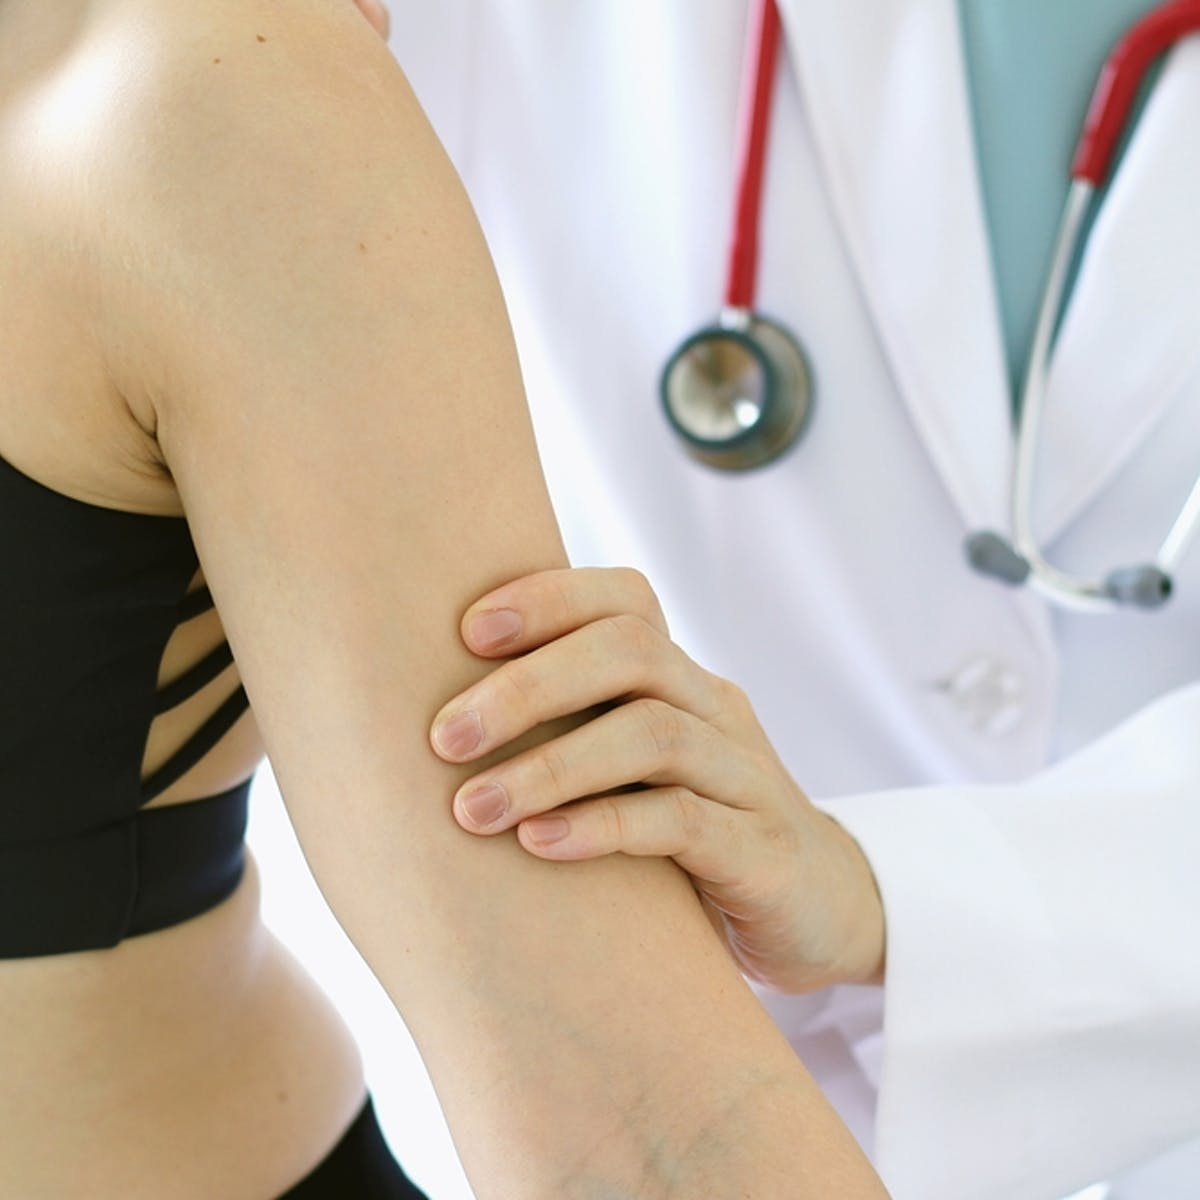 Is it ever OK to have a sexual relationship with your doctor?